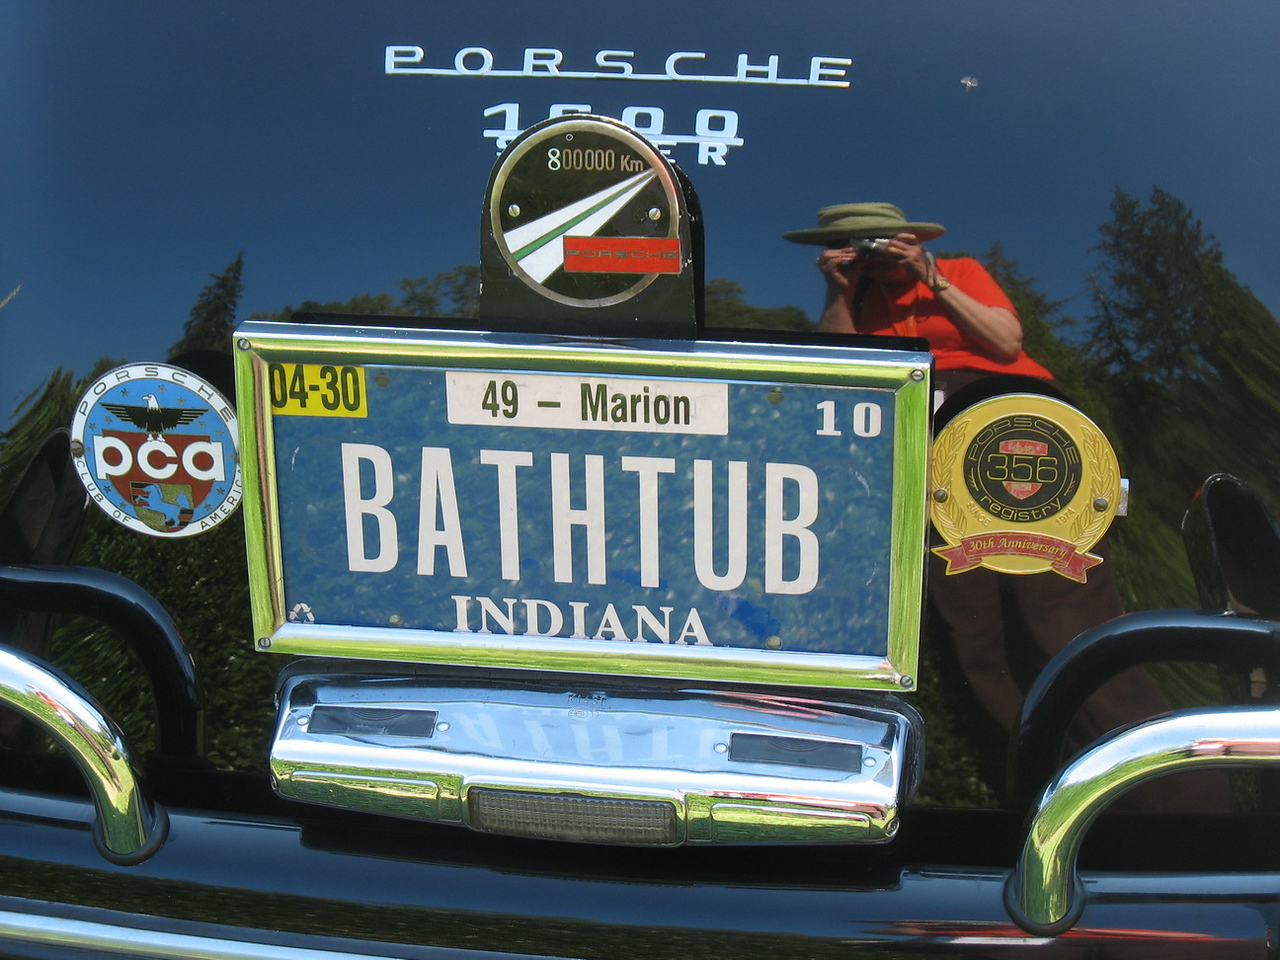 I caught my own reflection taking pictures of the various vanity plates. The restoration on many of these cars has left them with VERY shiny paint.